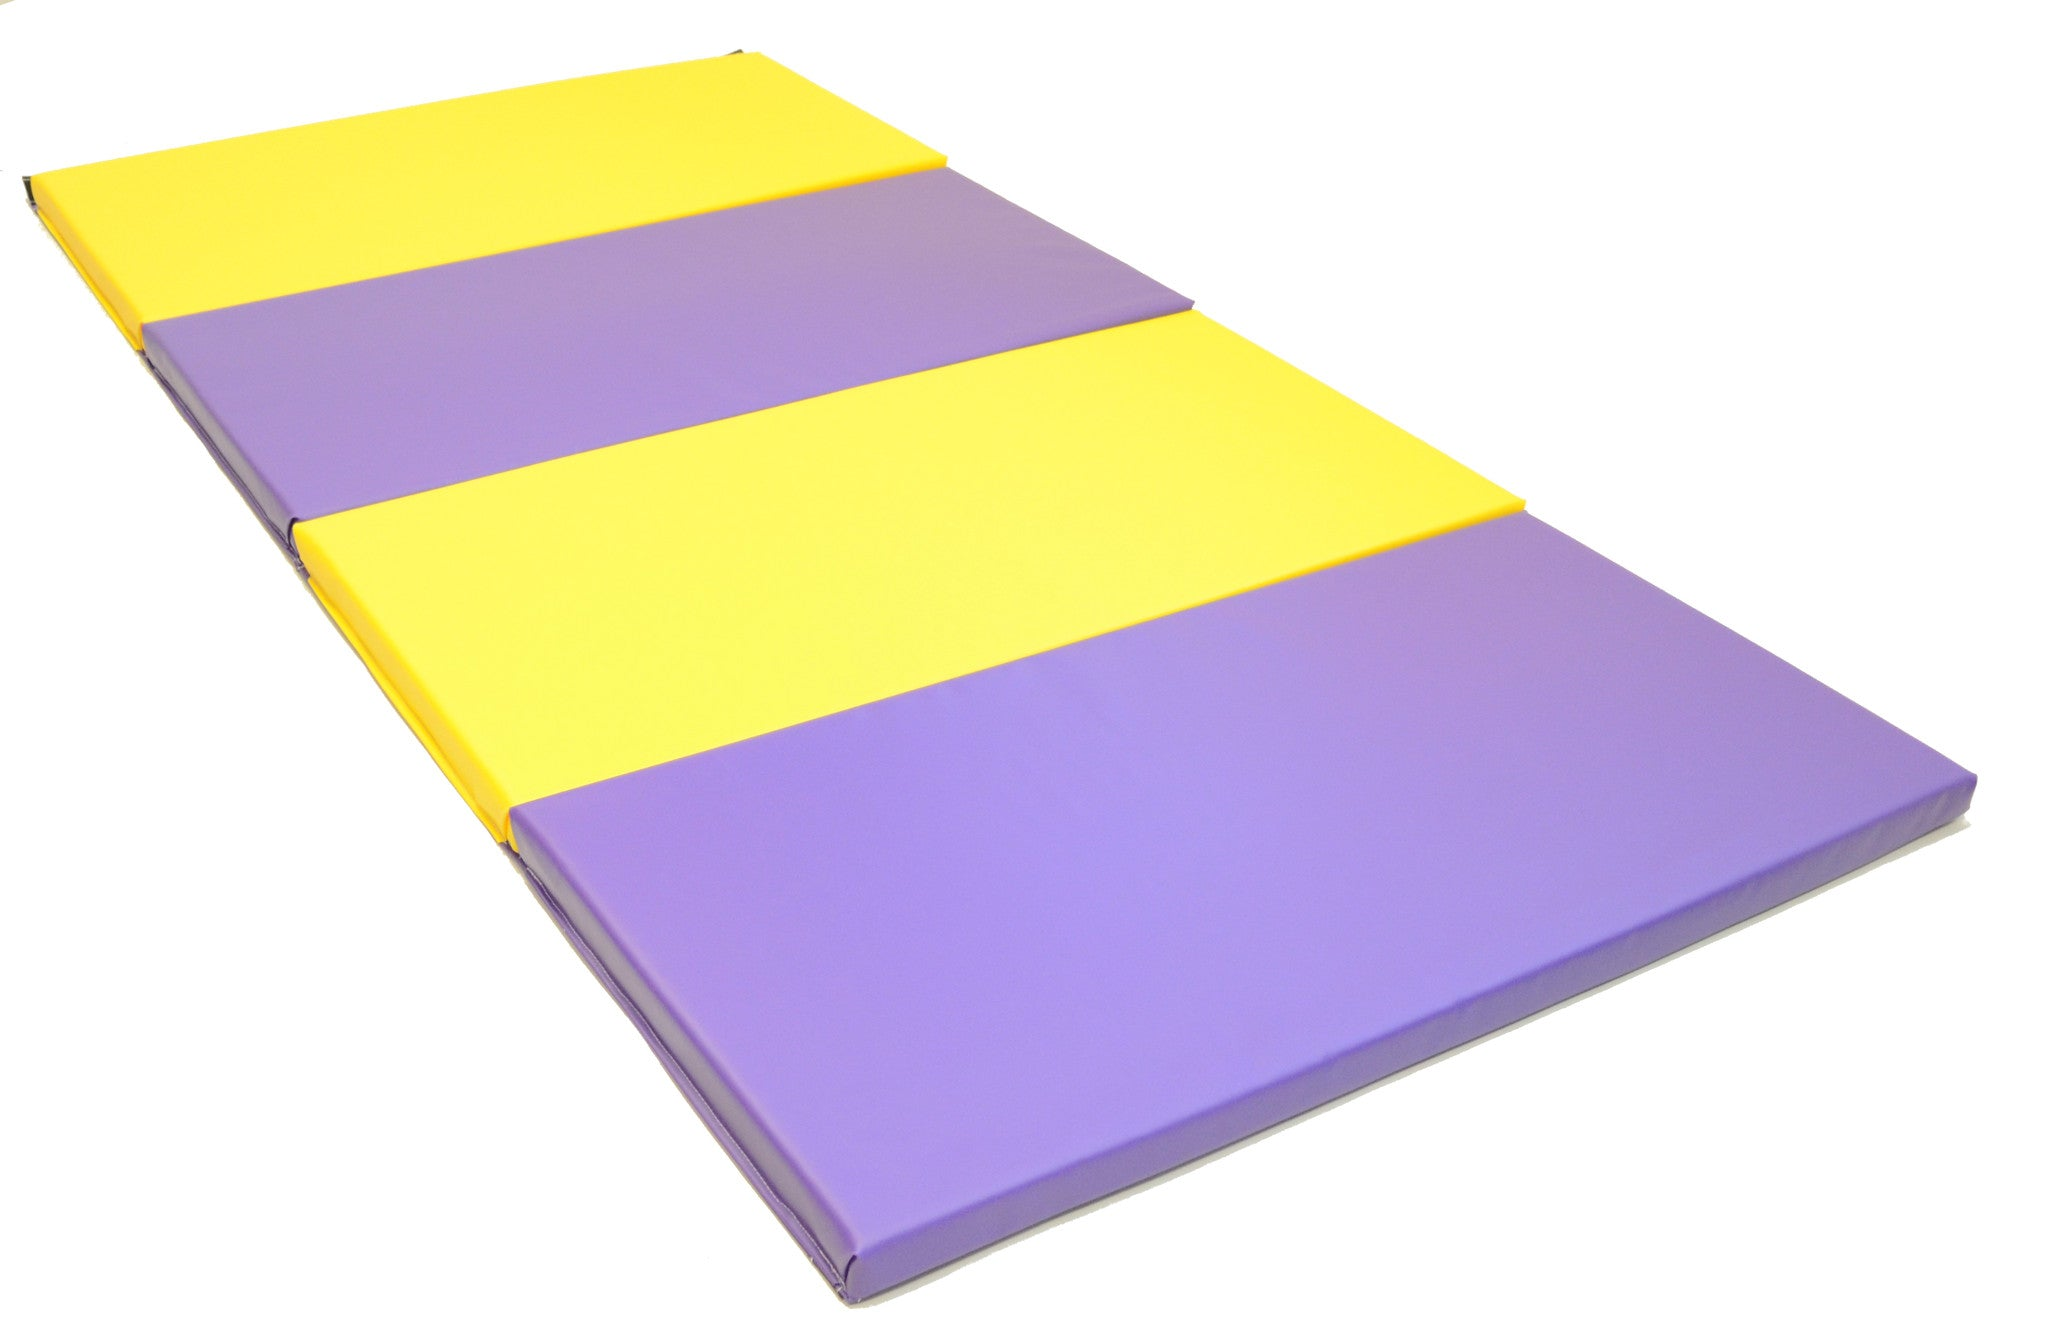 sale jill sports amazon com tumbl outdoors jack cheap gymnastics trak mats x for l mat dp